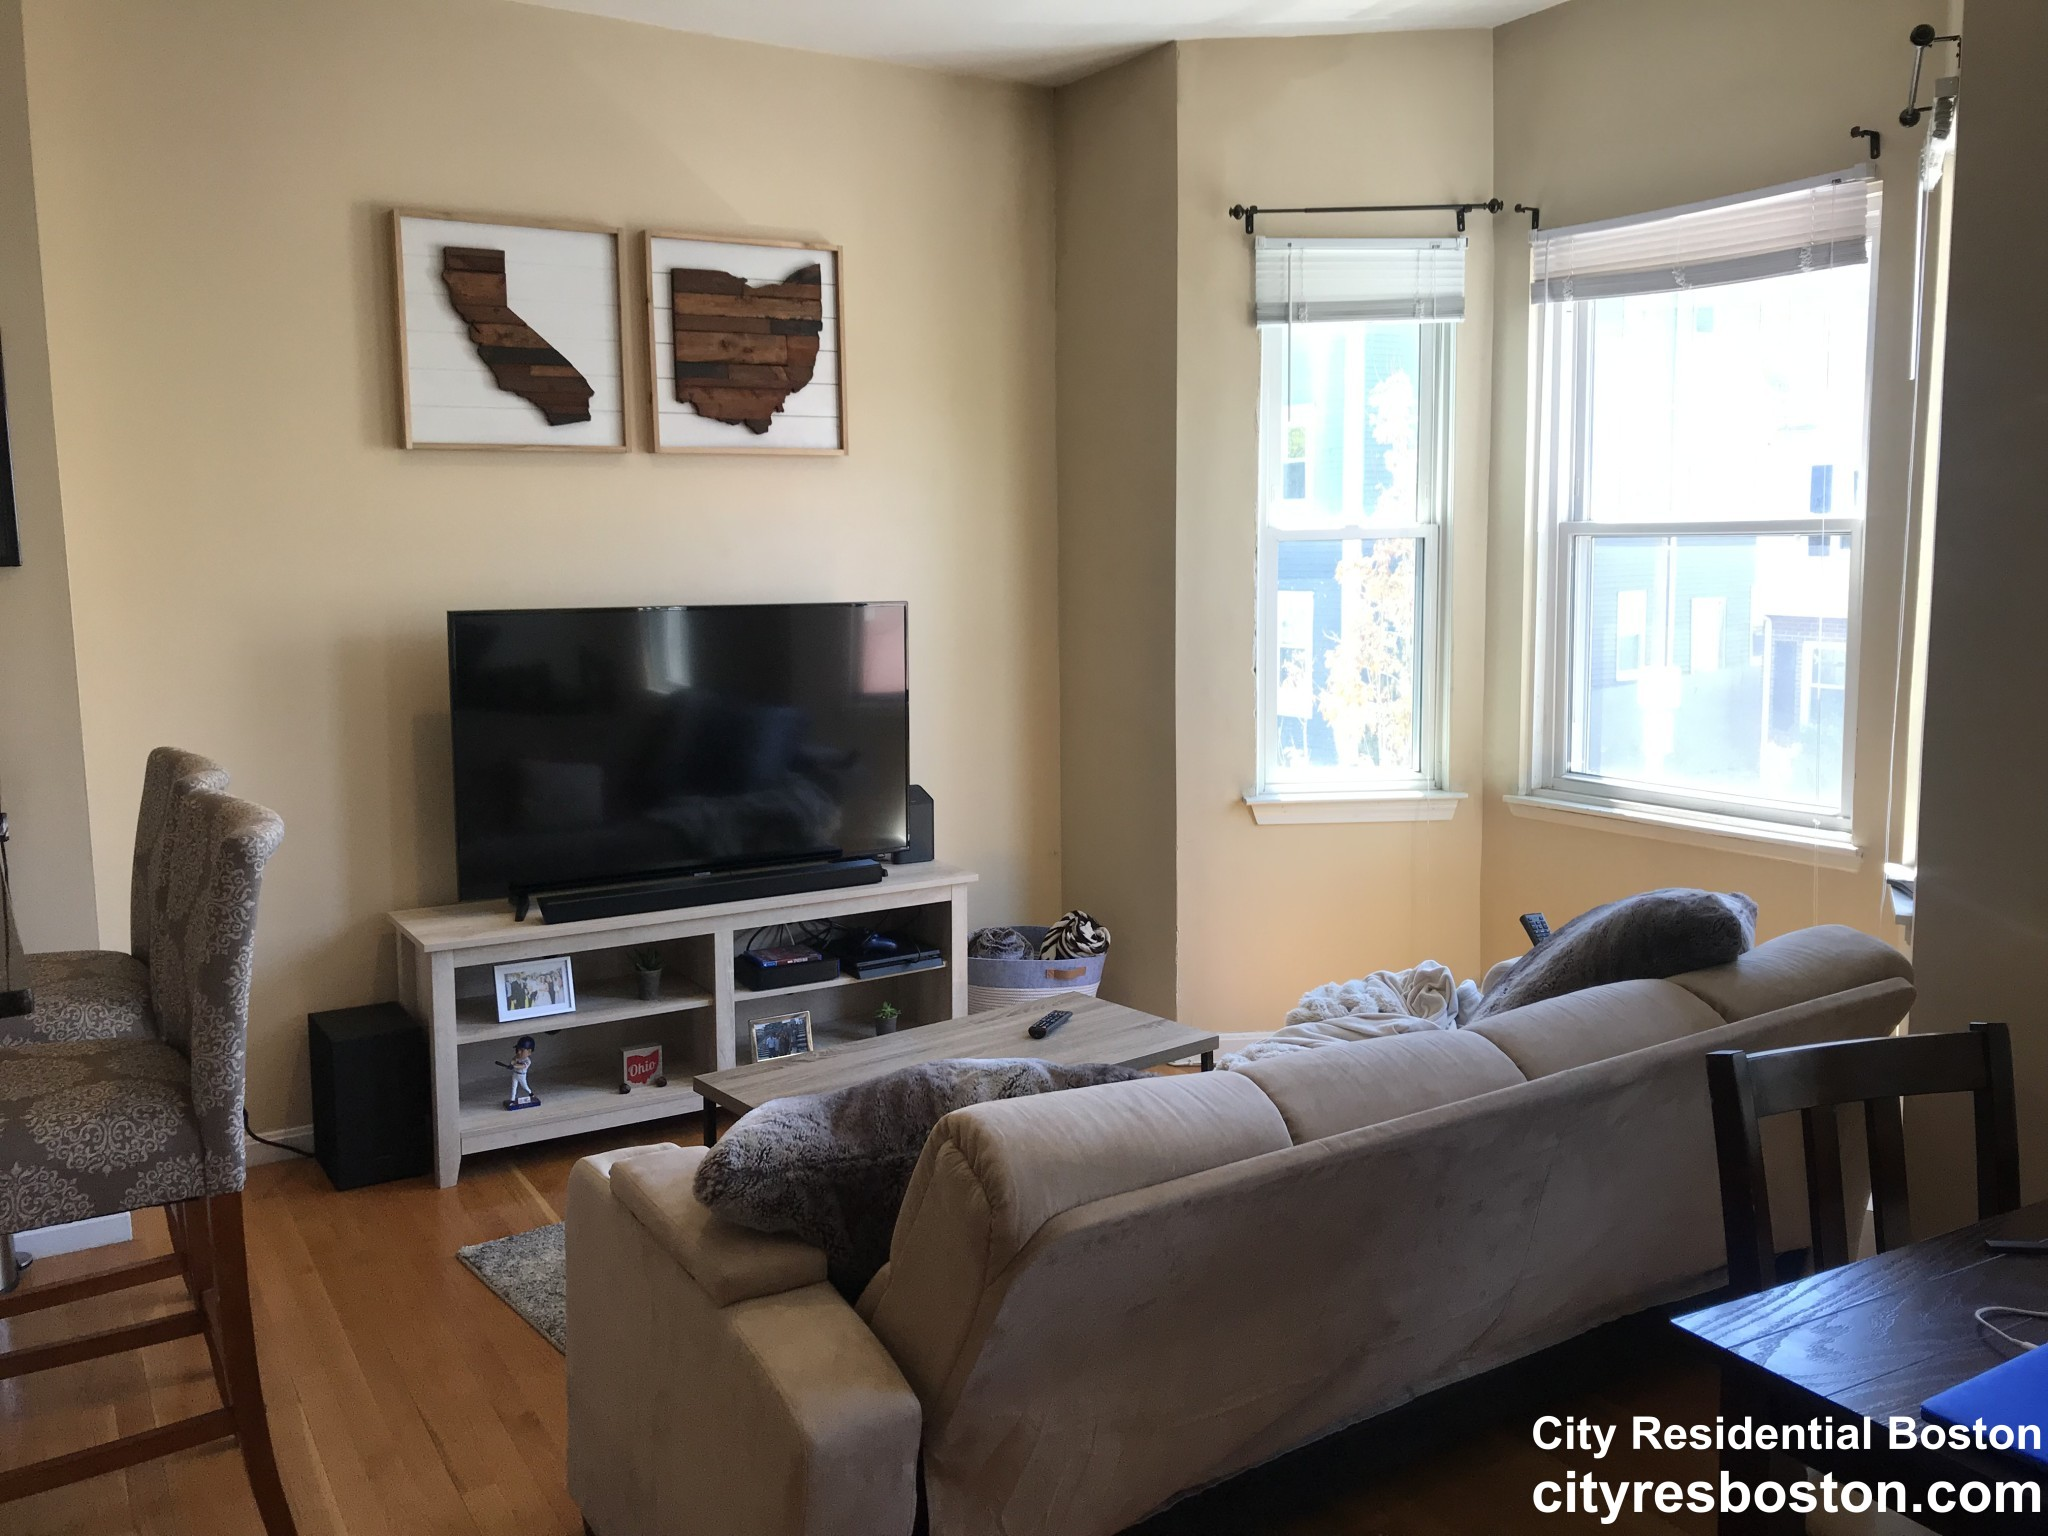 1 Bed, 1 Bath apartment in Boston, South Boston for $2,000